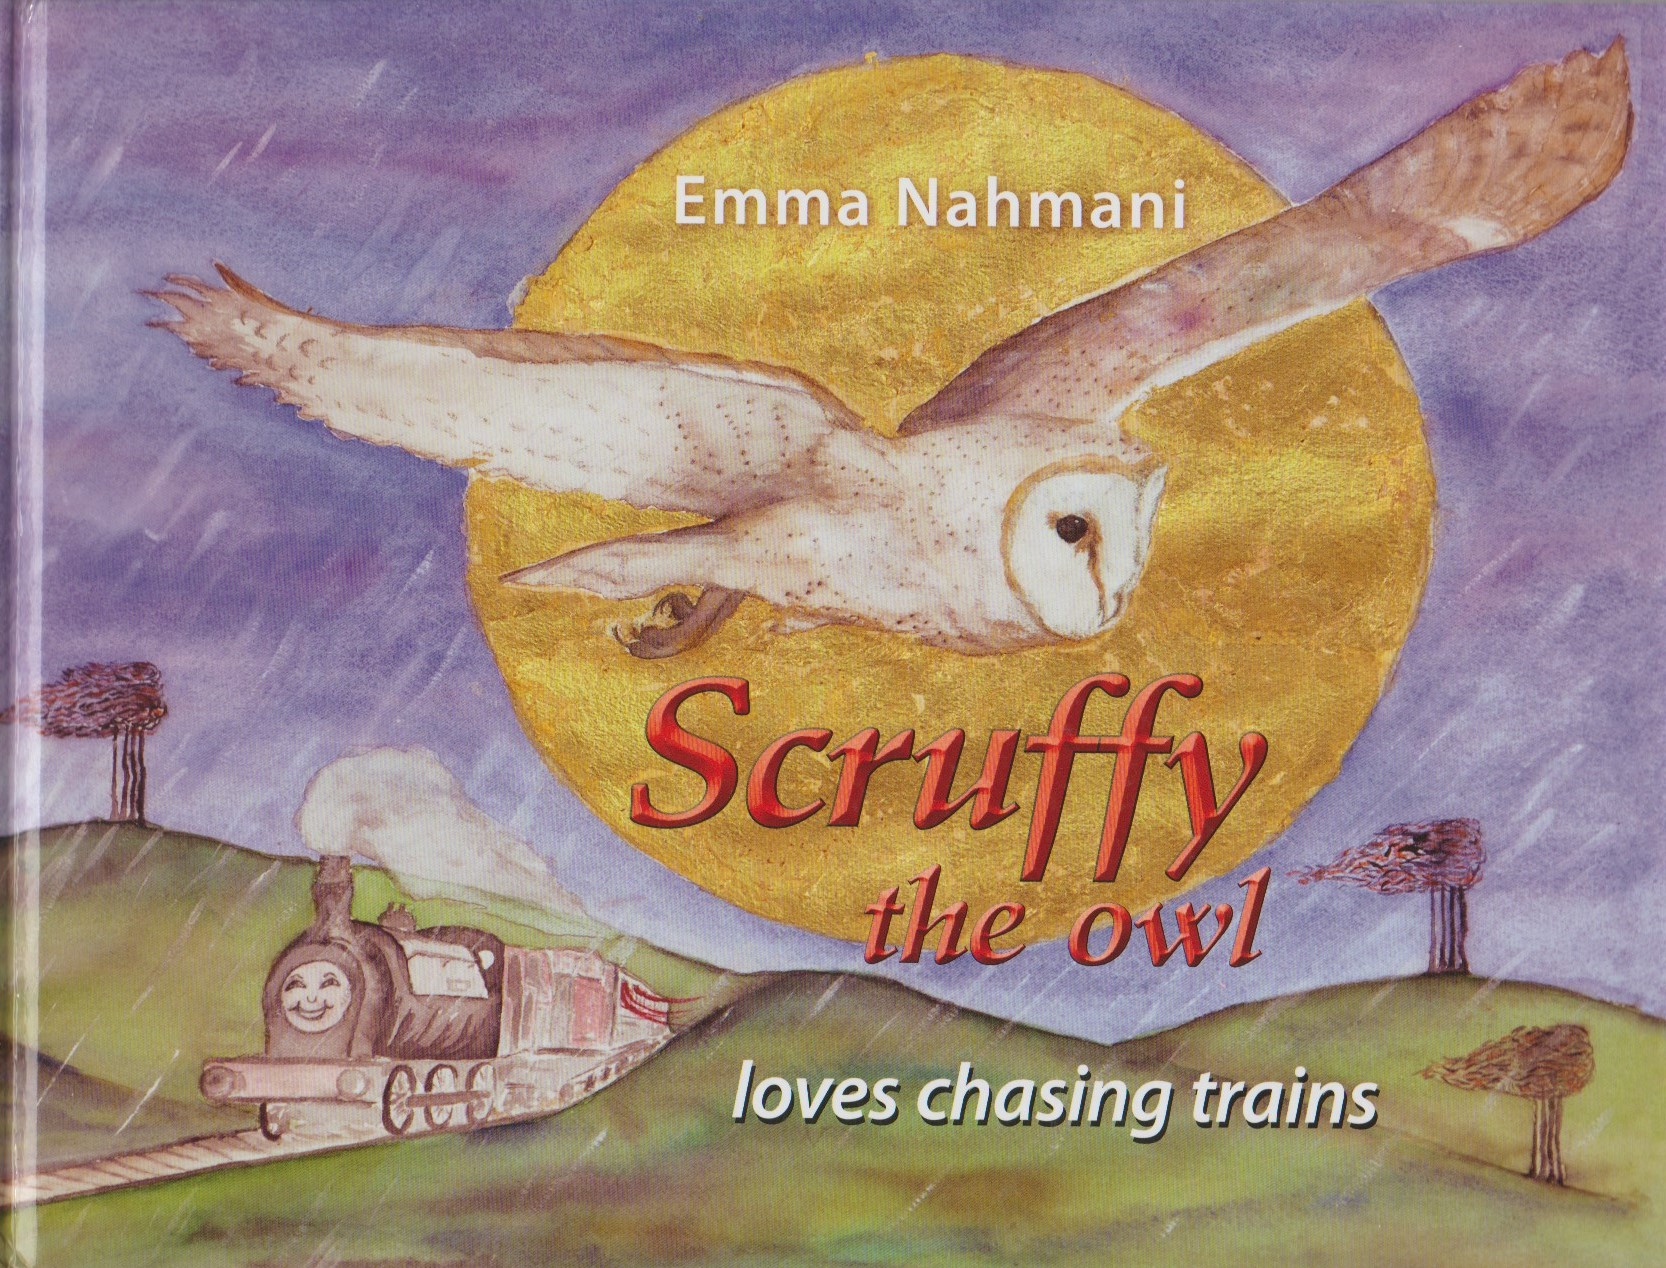 Scruffy the Owl Loves Chasing Trains